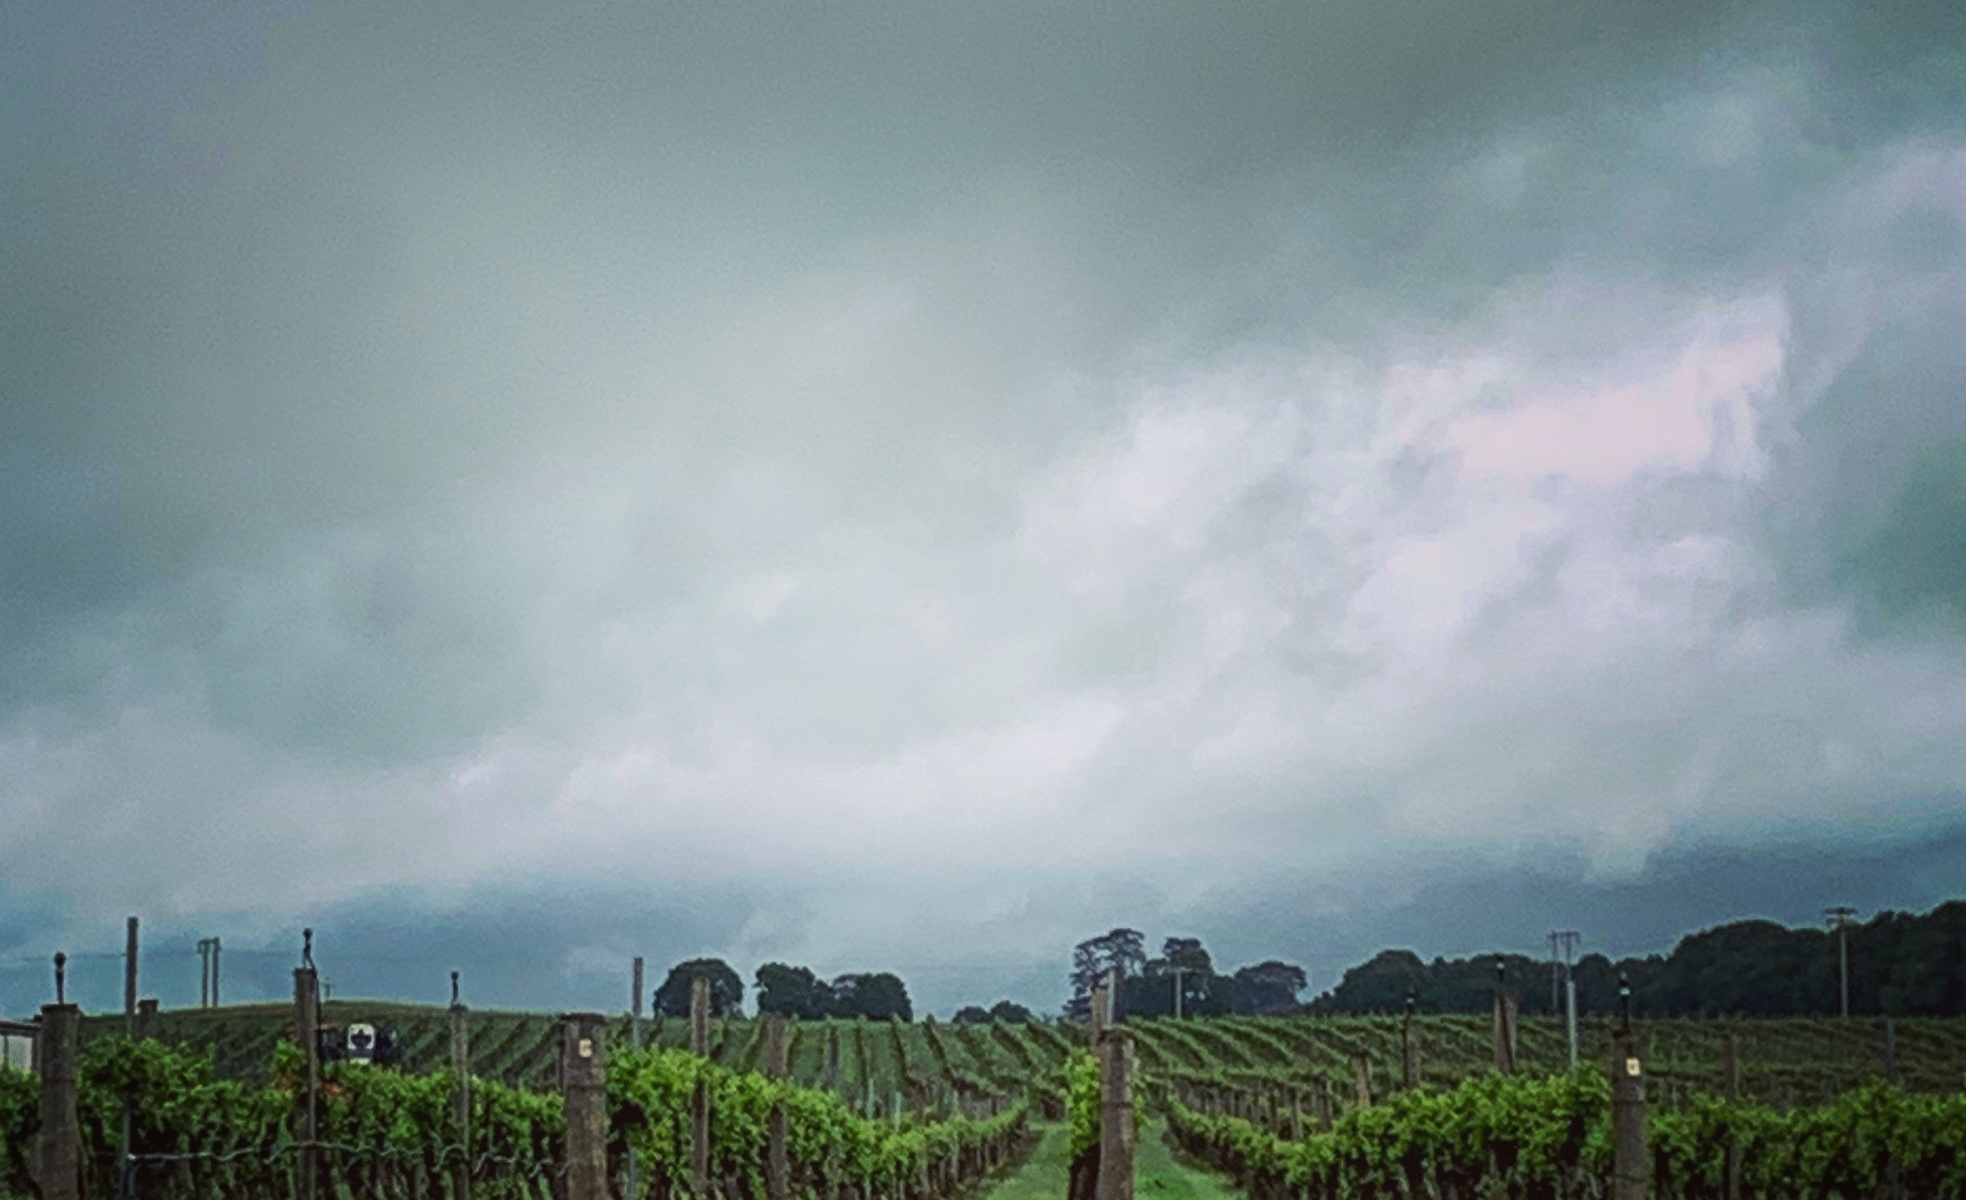 Storm over the vineyard